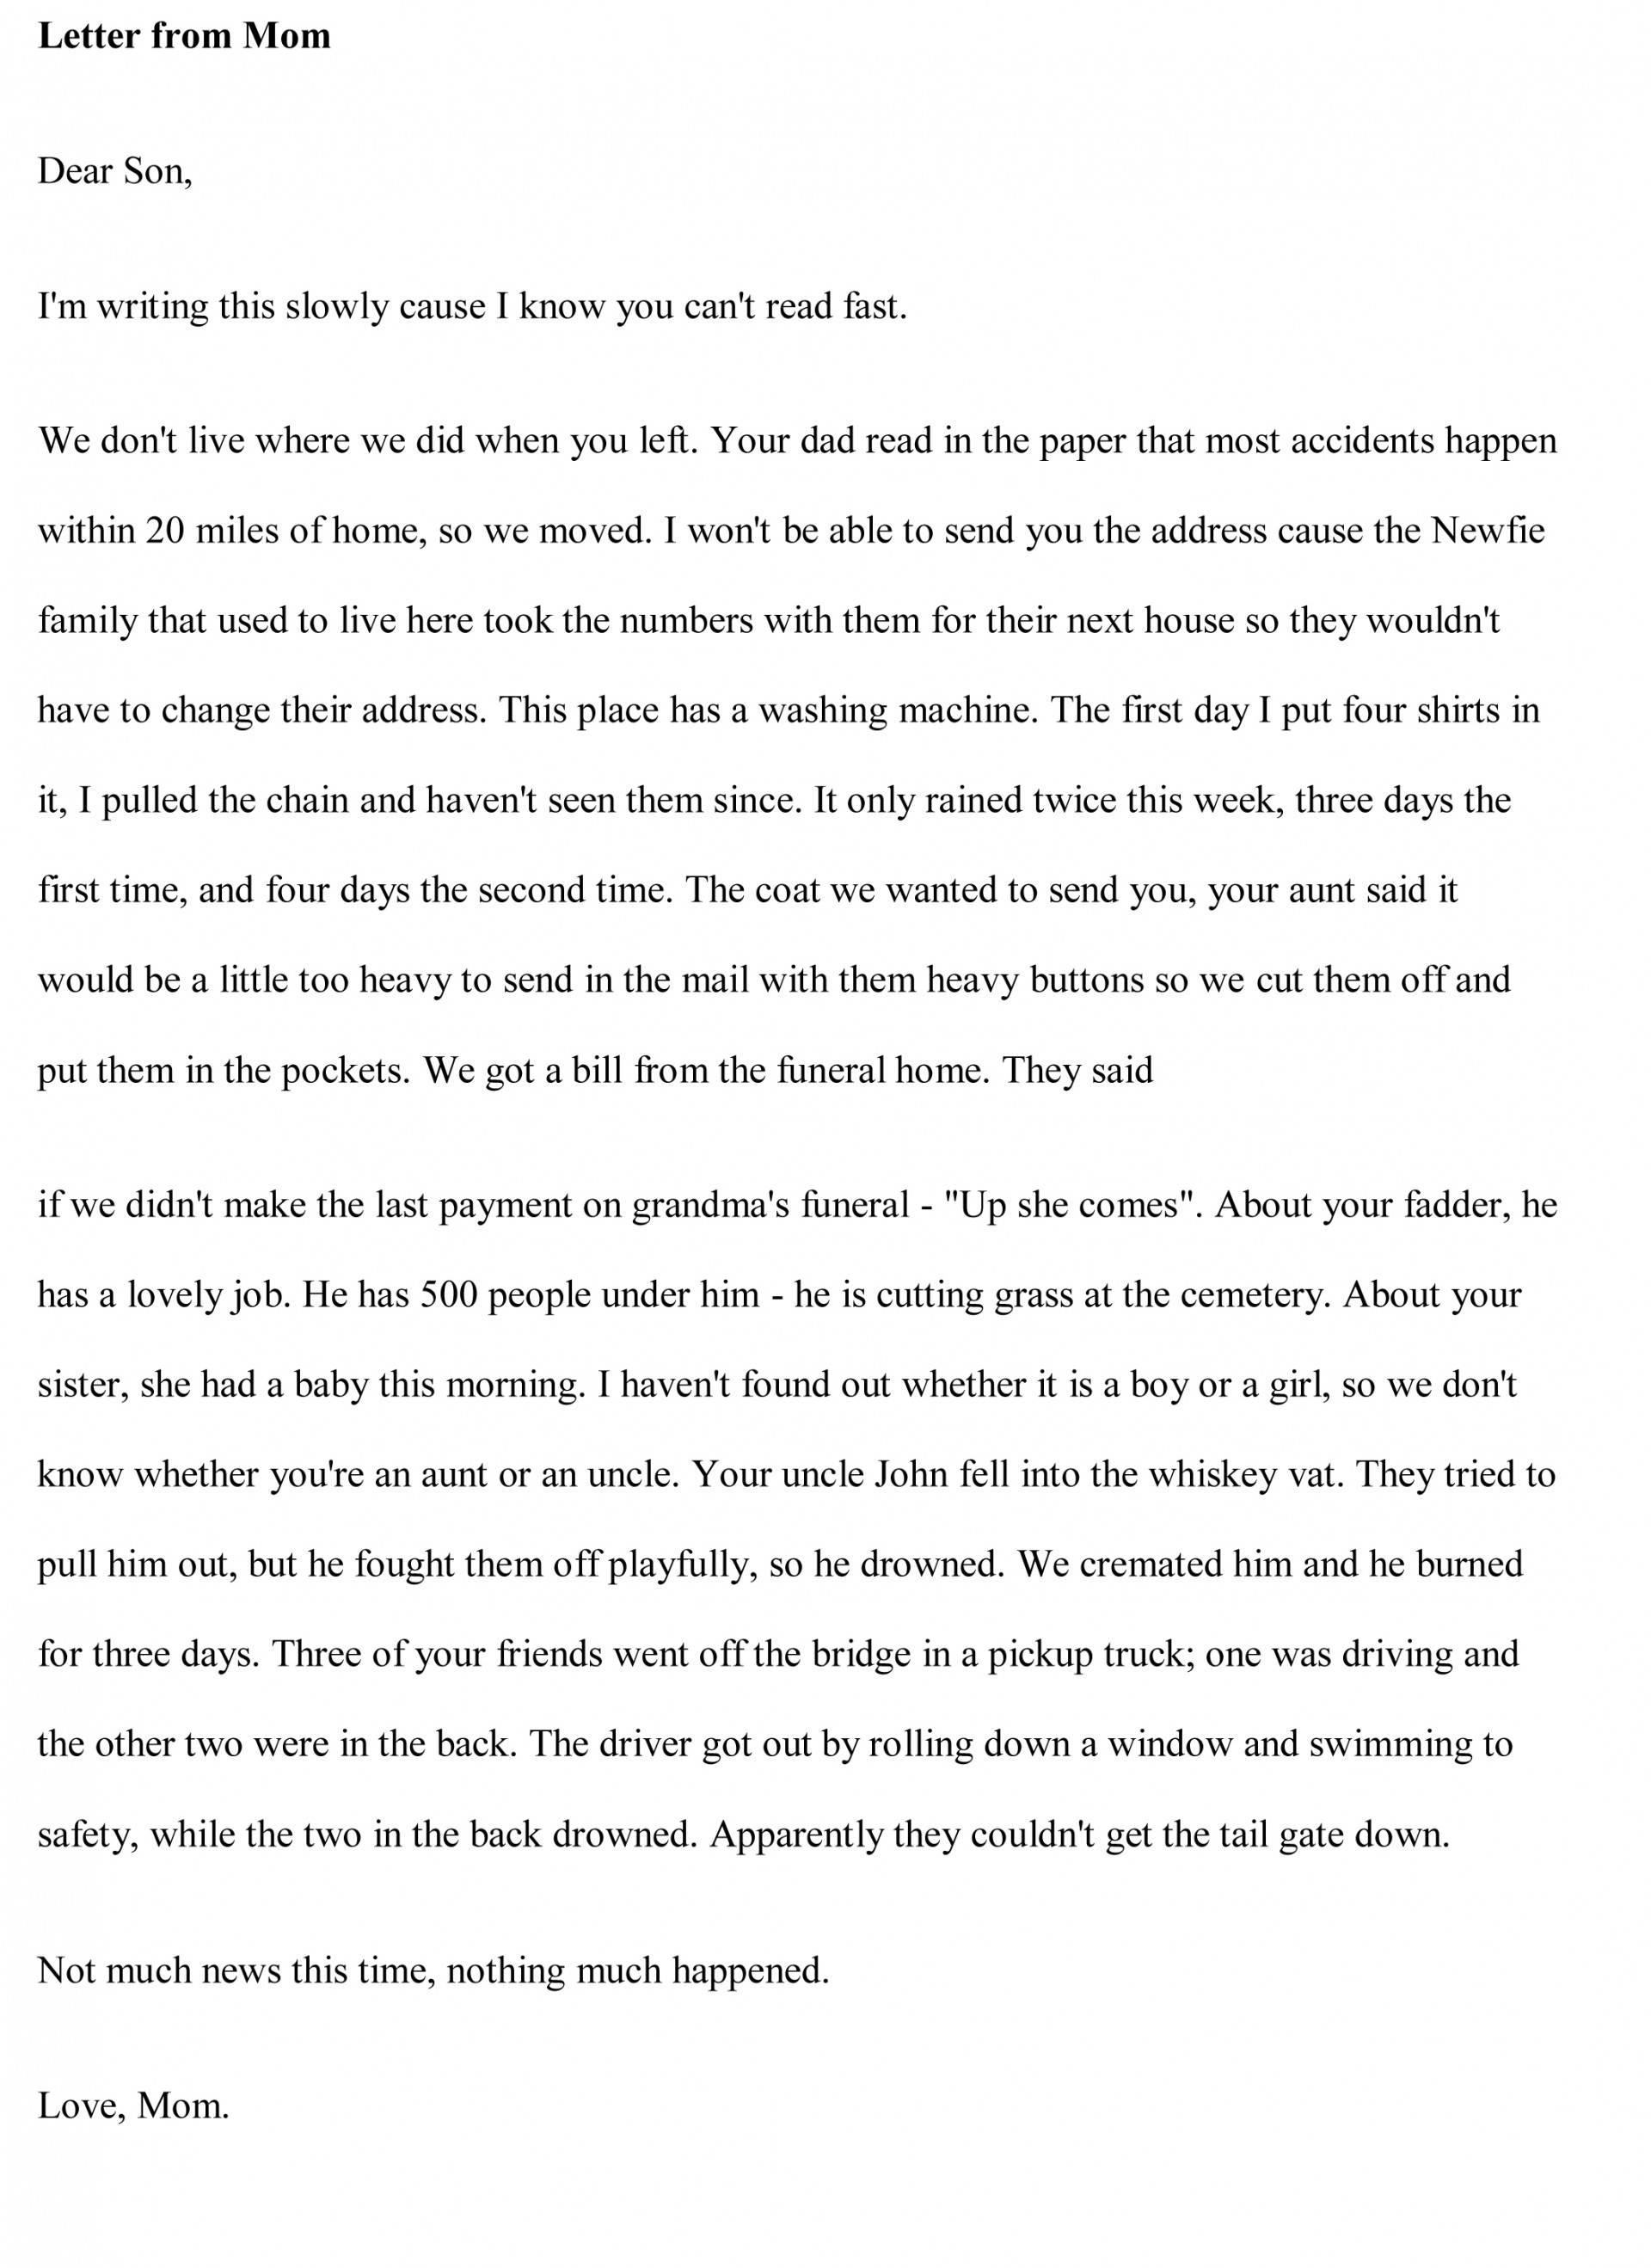 003 Essay Example Funny Essays Free Stupendous Topics For High School Students About 1920